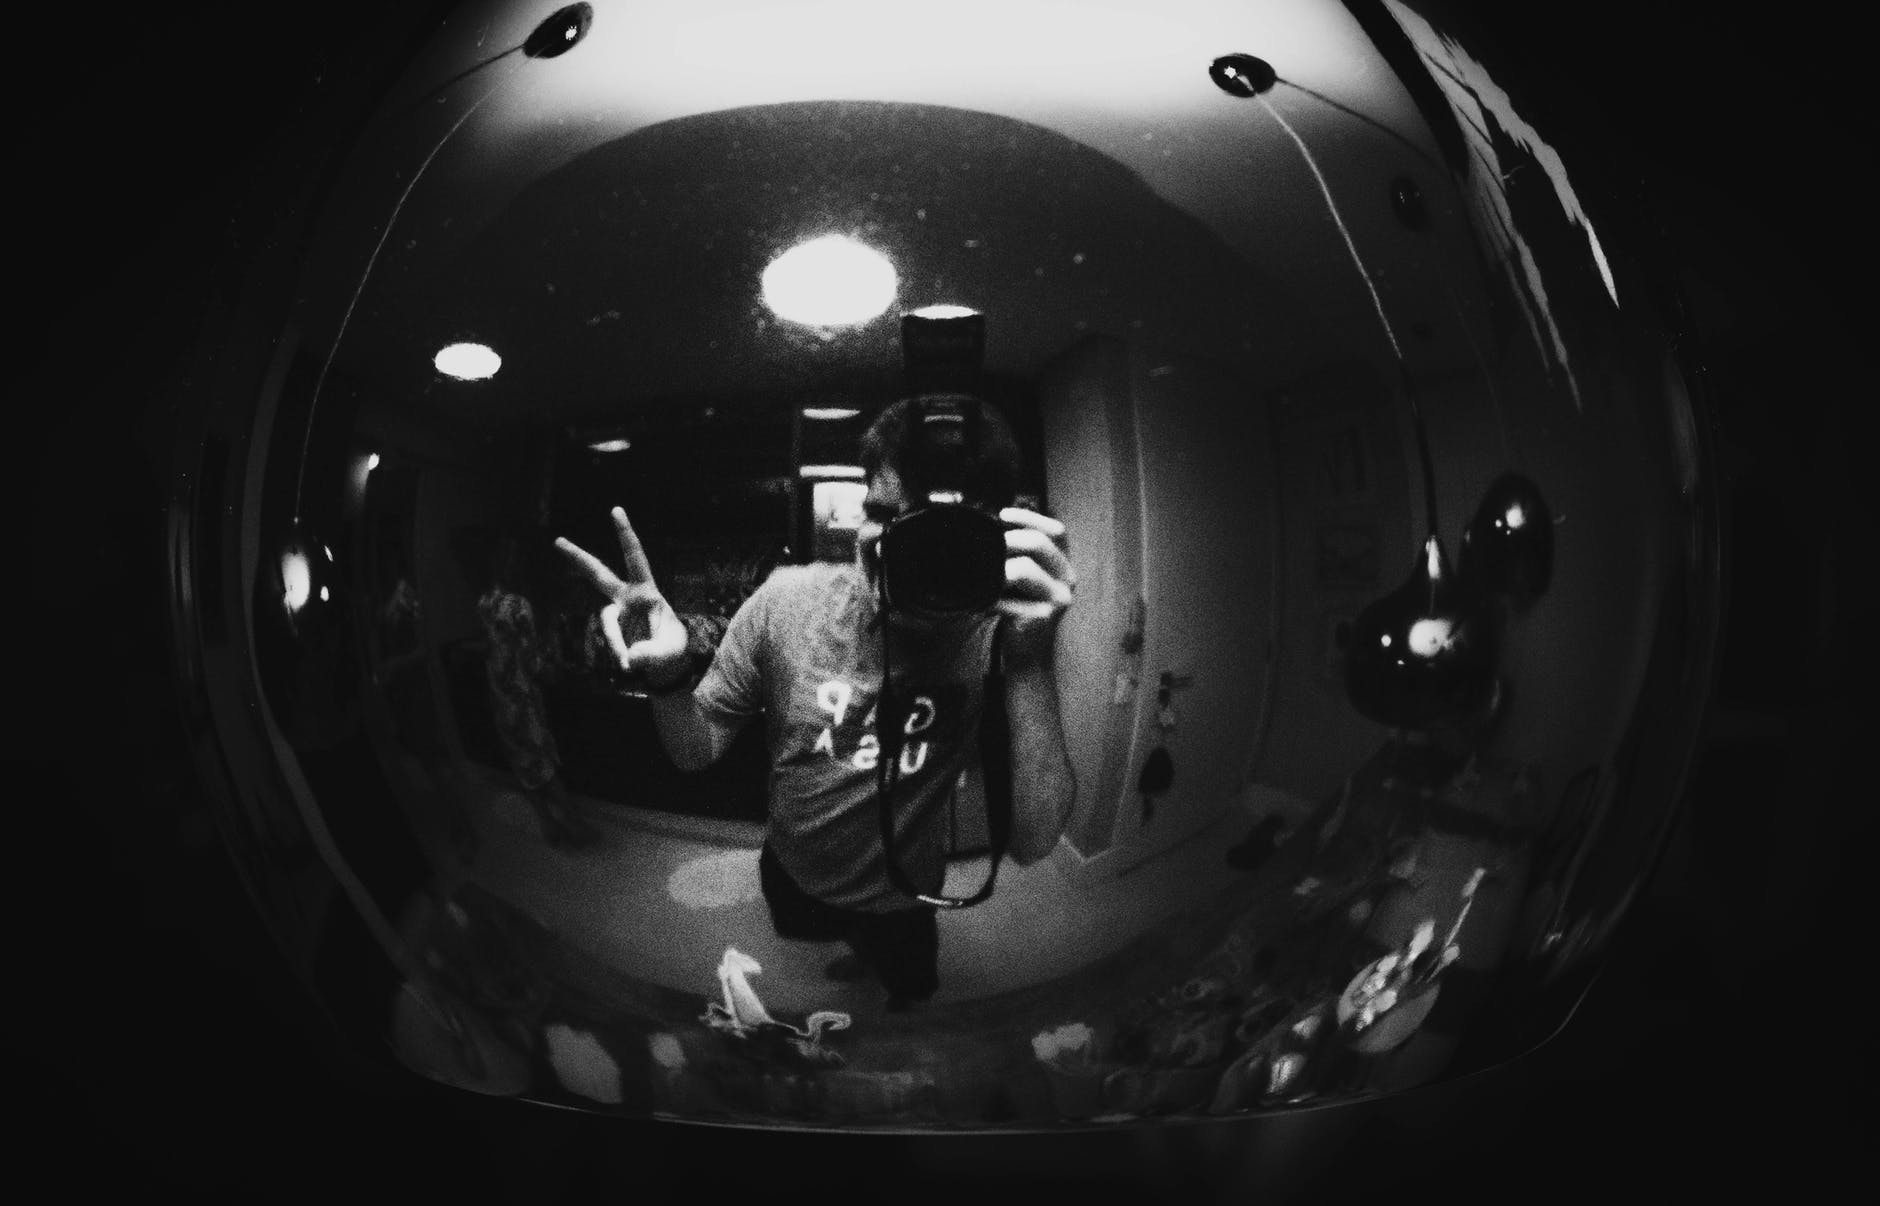 Image Description: A black and white photo of a man taking a selfie with his fingers in a peace sign.